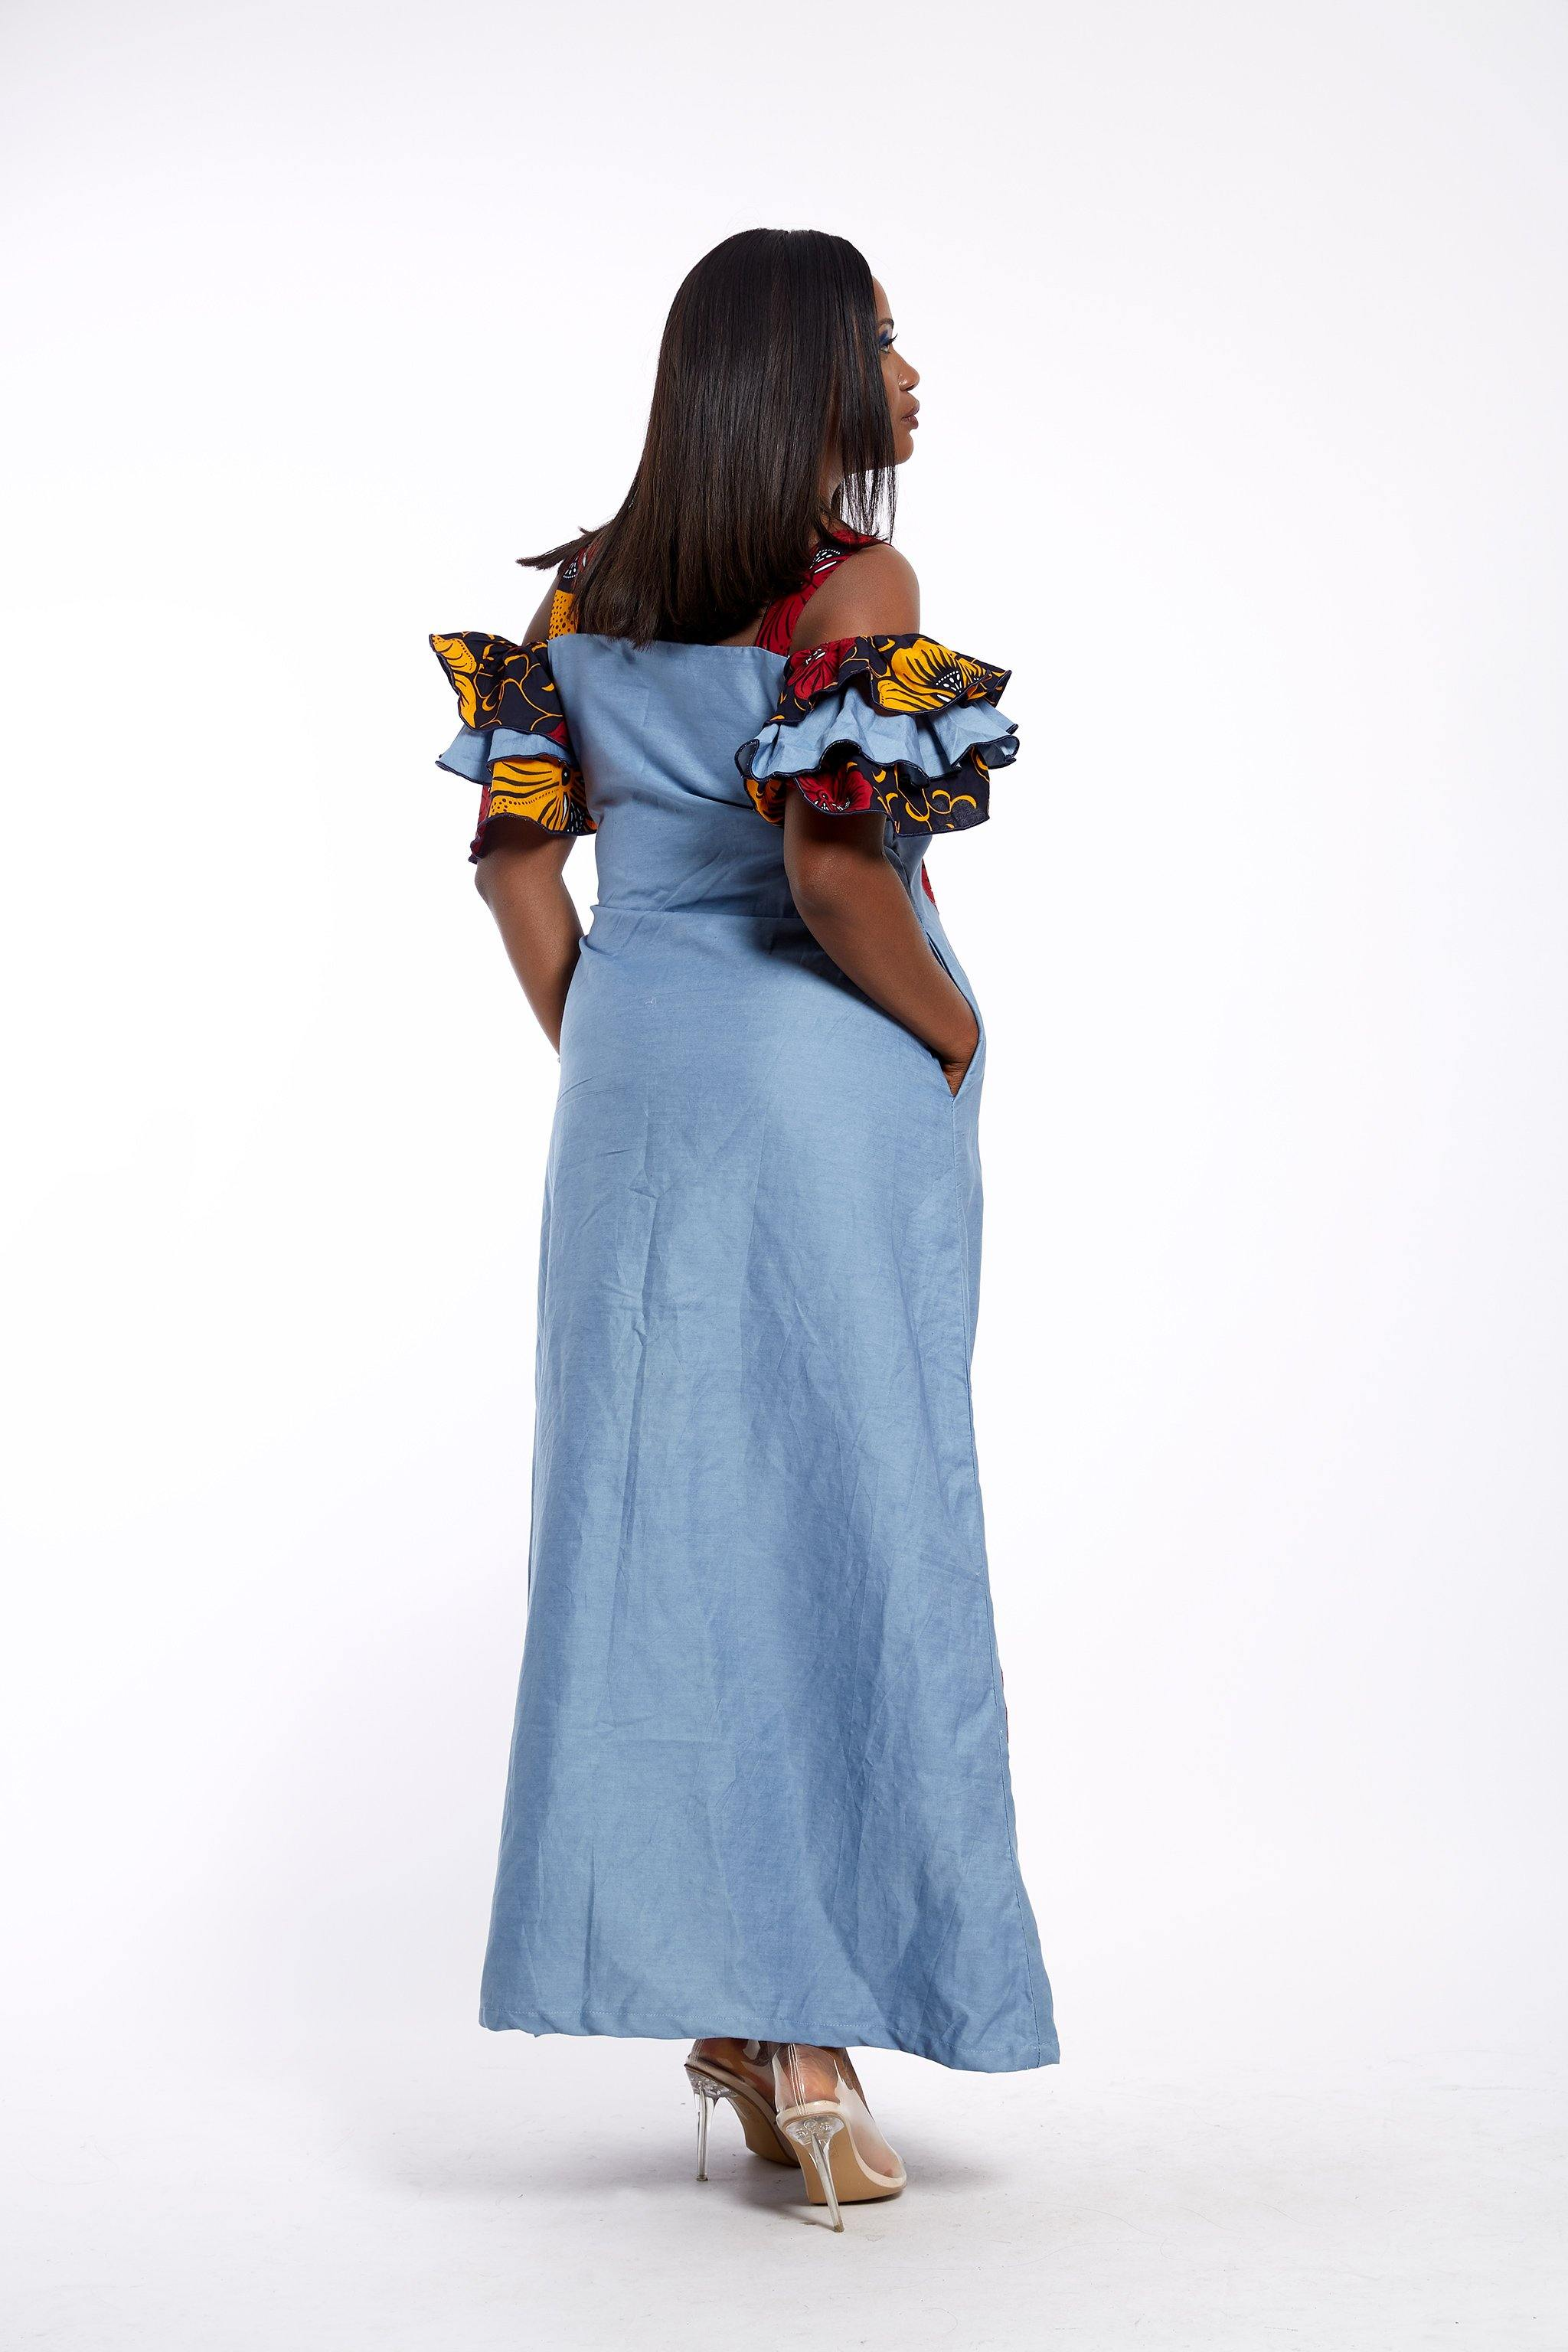 WAA- Embellished Denim and Ankara Maxi Dress - waafashion